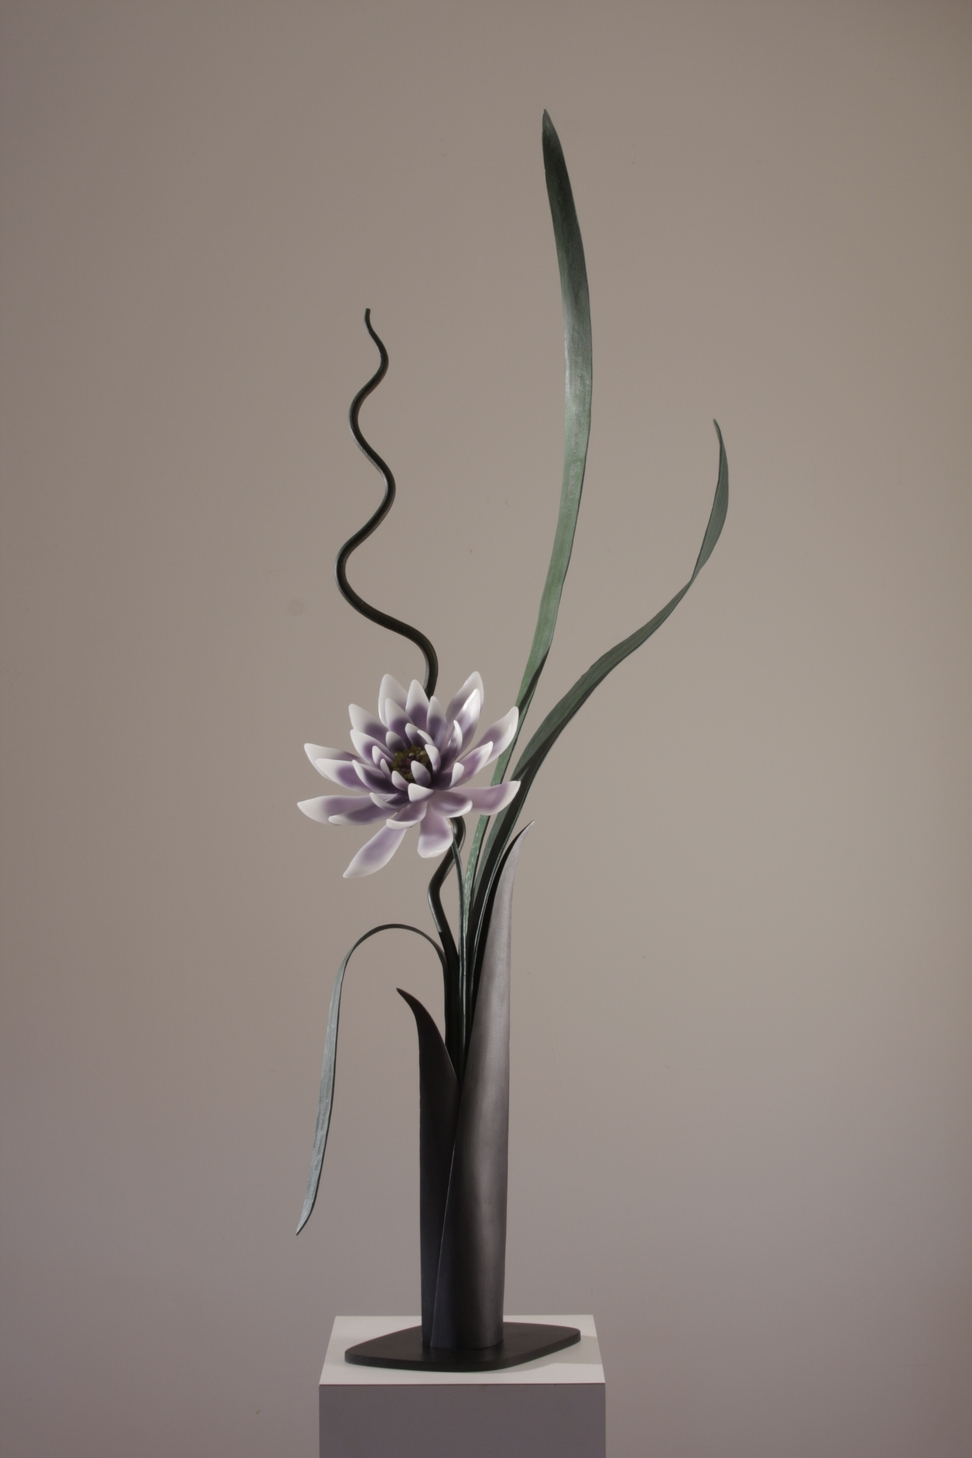 Sculptural flower arrangement in cast glass with white and lavender flower, green steel leaves, tall vase in deep brown.